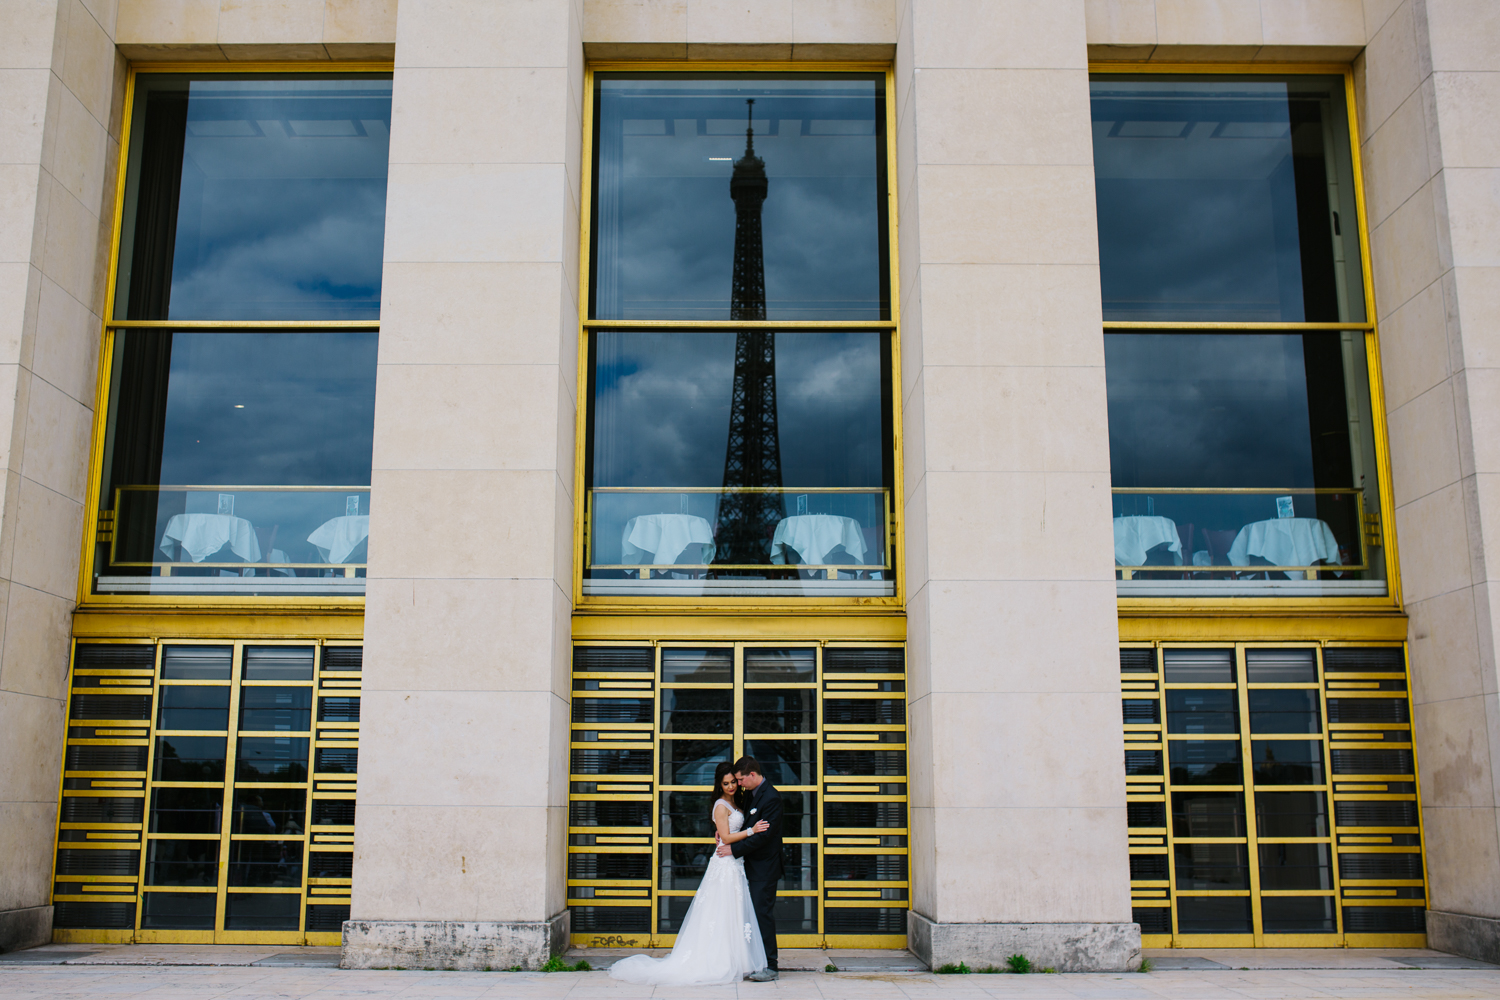 Chico-Wedding-Photography-Ranalla-Photo-Films-Wedding-Video-Wedding-Photographer-Destination-wedding-photographer-venice-wedding-paris-wedding-paris-night-eiffel-tower-5.jpg